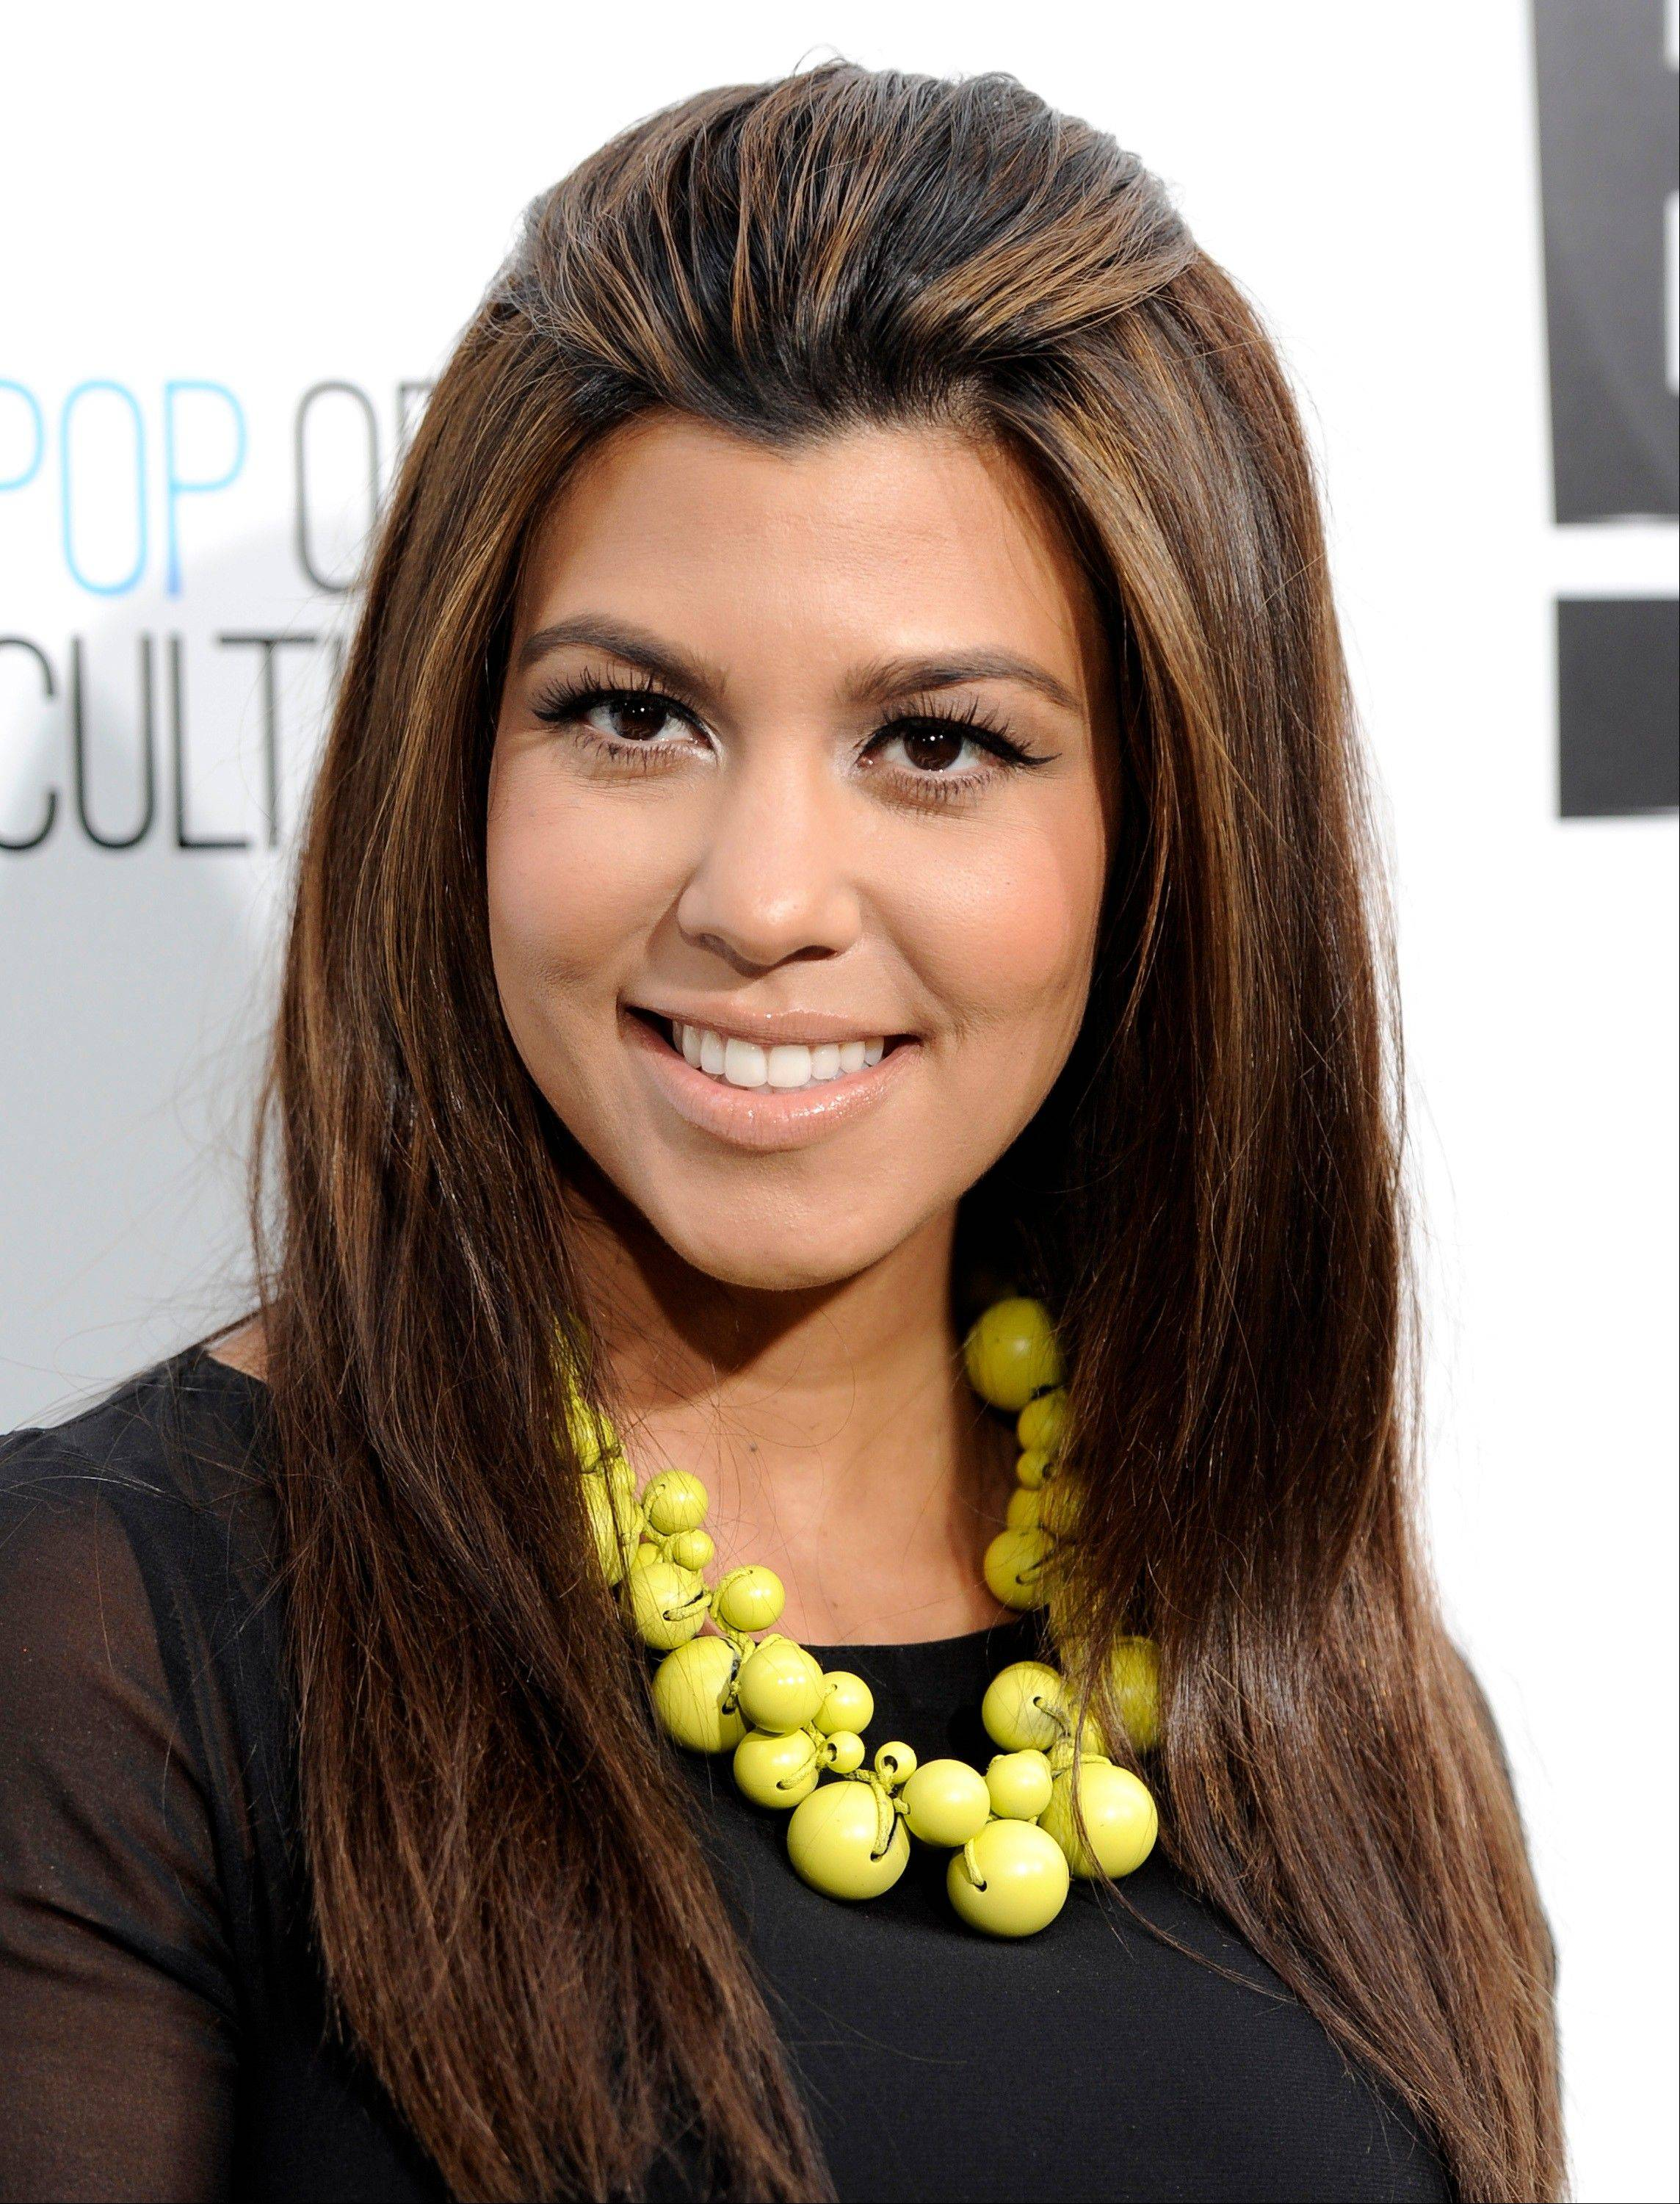 Kourtney Kardashian gave birth to a girl she�s naming Penelope early Sunday.